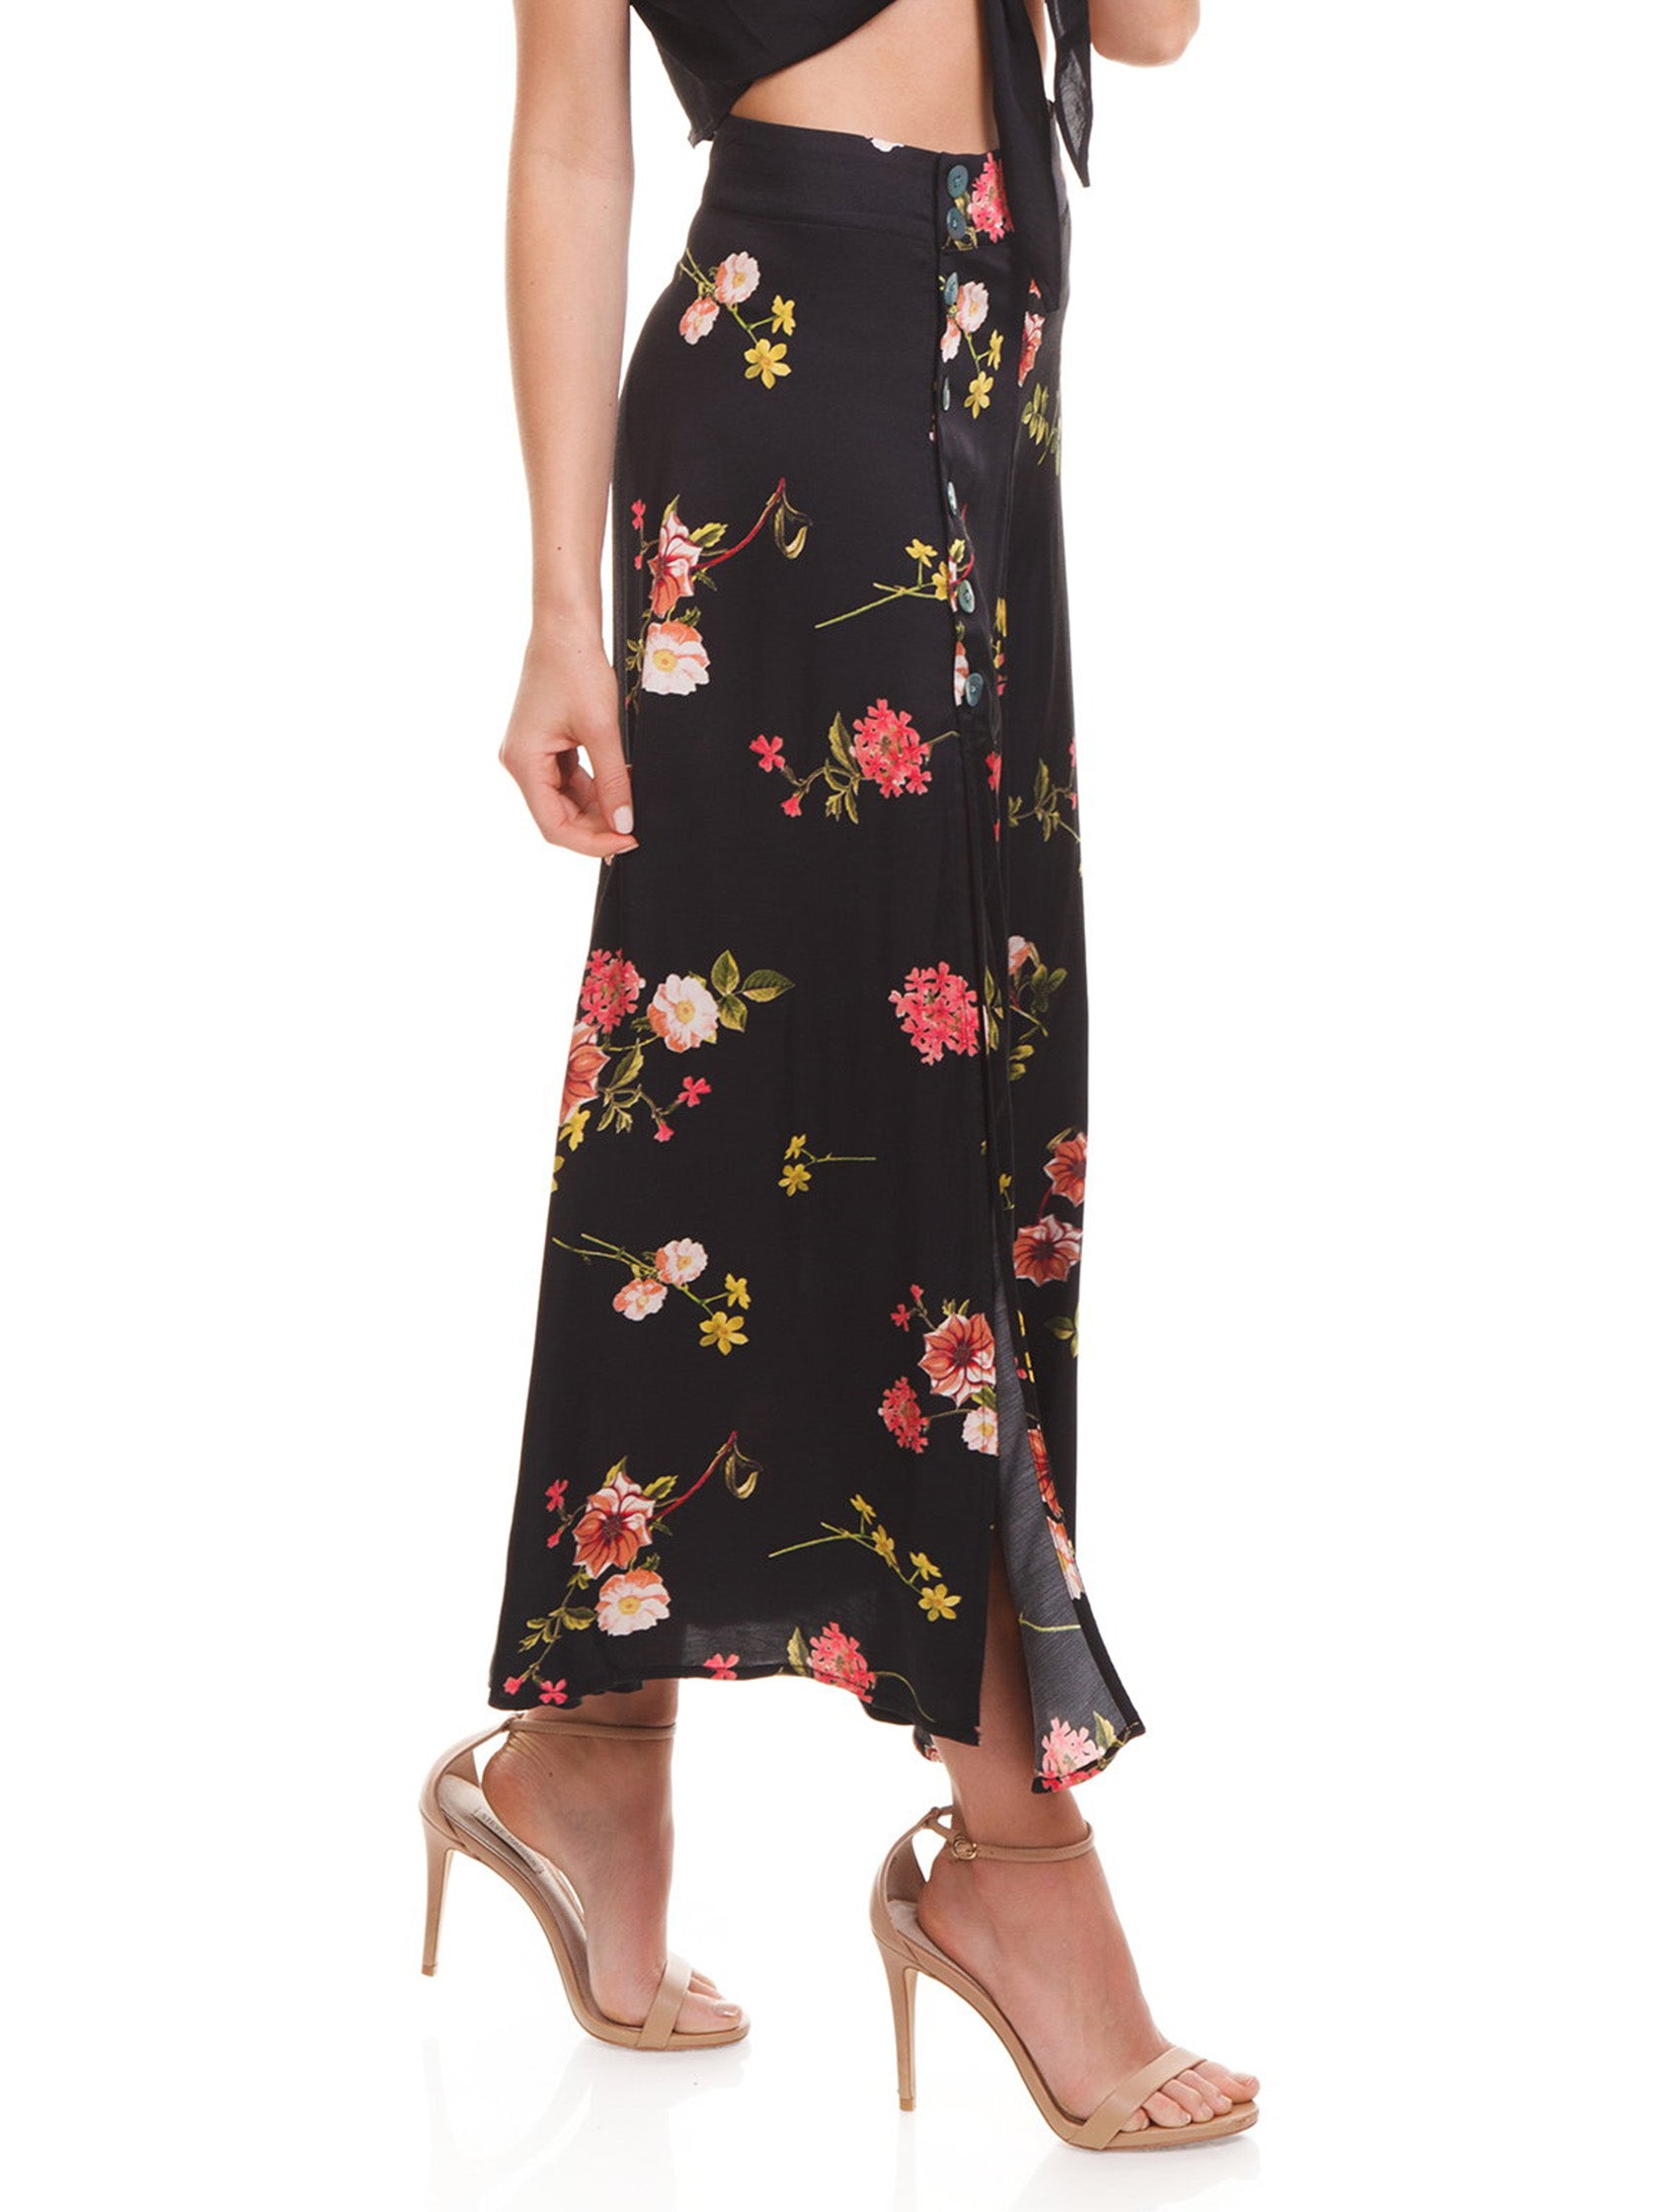 Women wearing a skirt rental from Capulet called Madie Midi Skirt